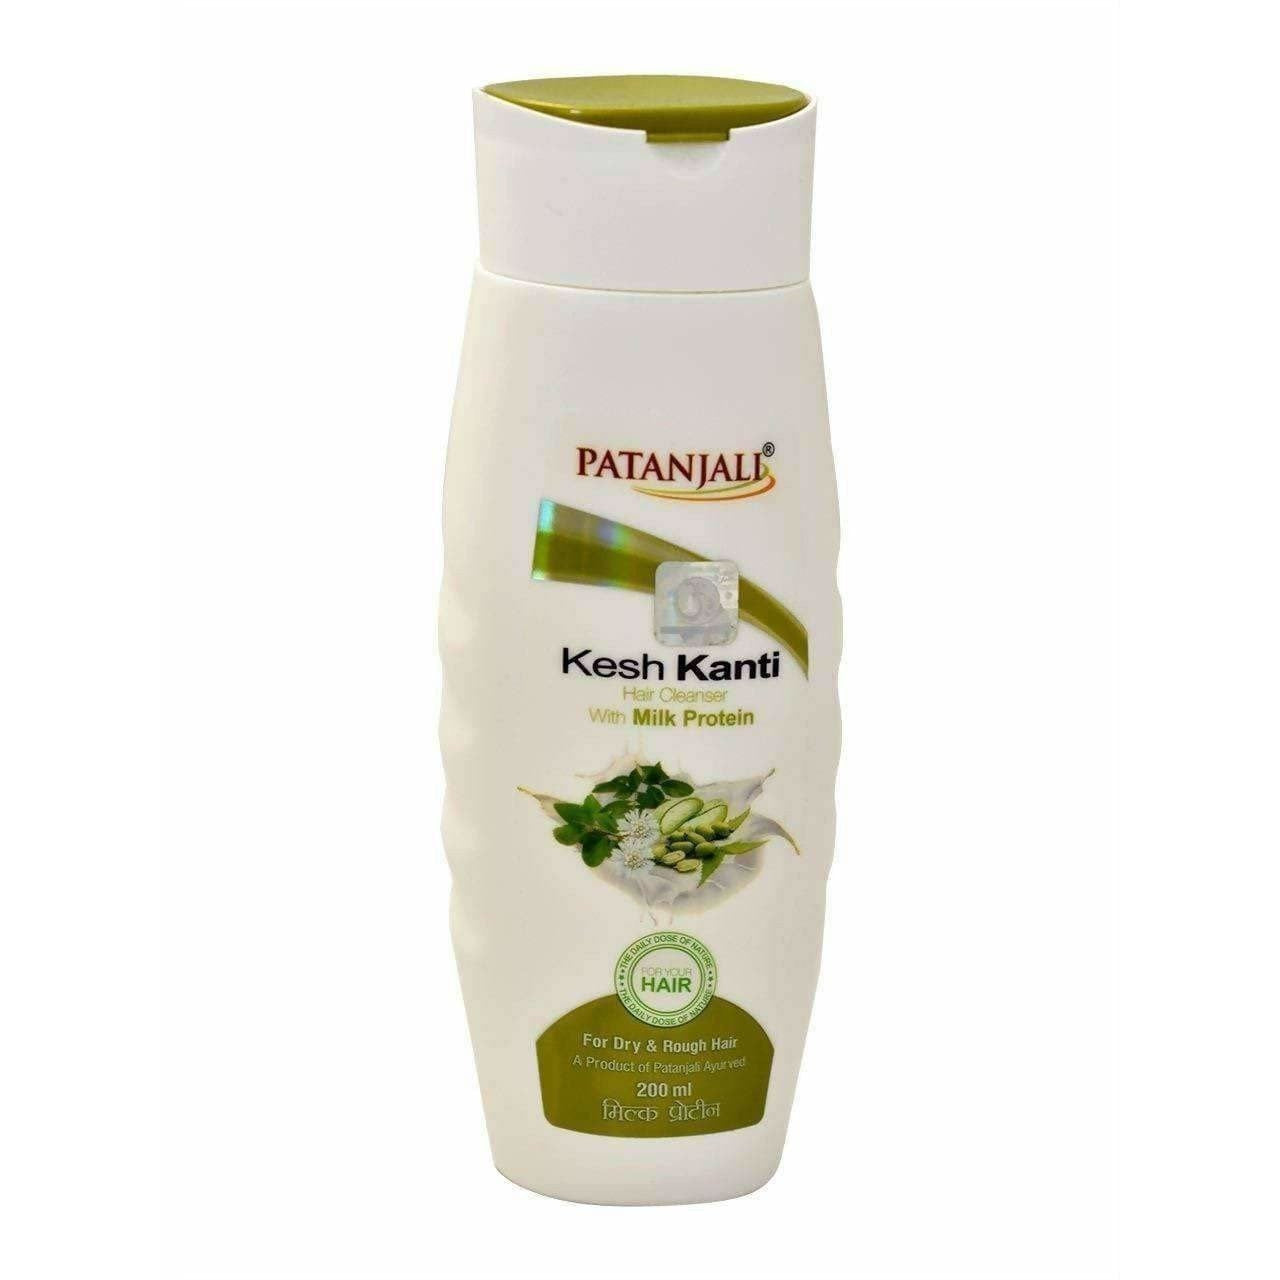 Patanjali Kesh Kanti Milk Protein Hair Cleanser (200 ML)